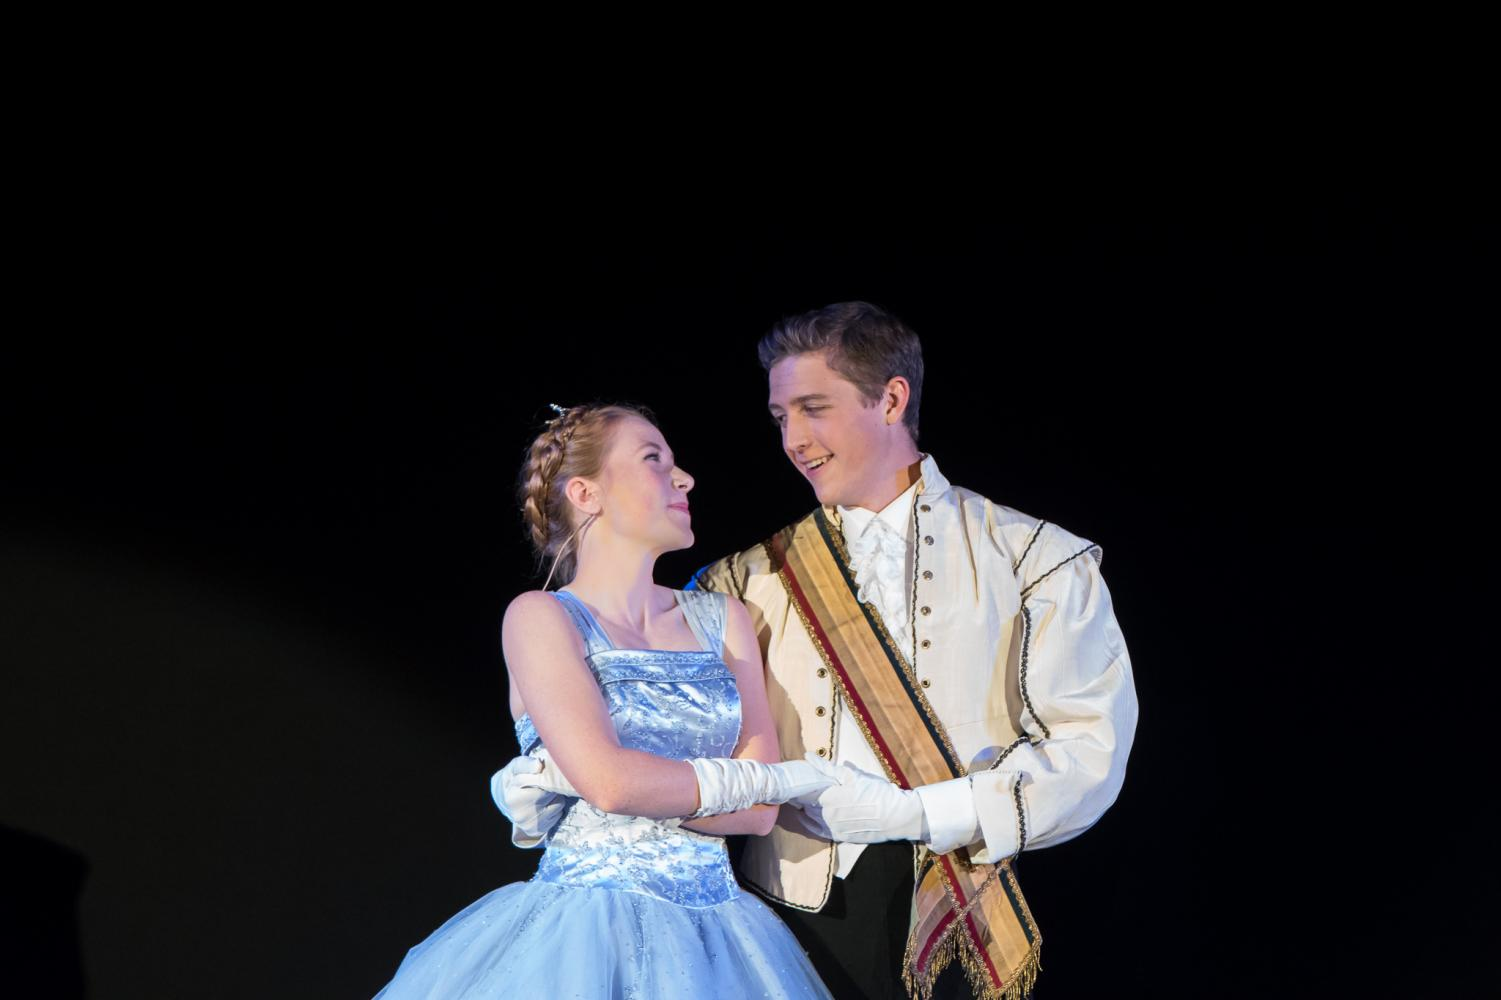 The lead Cinderella was played by Camryn Self and Prince charming by Turner Linafelter.